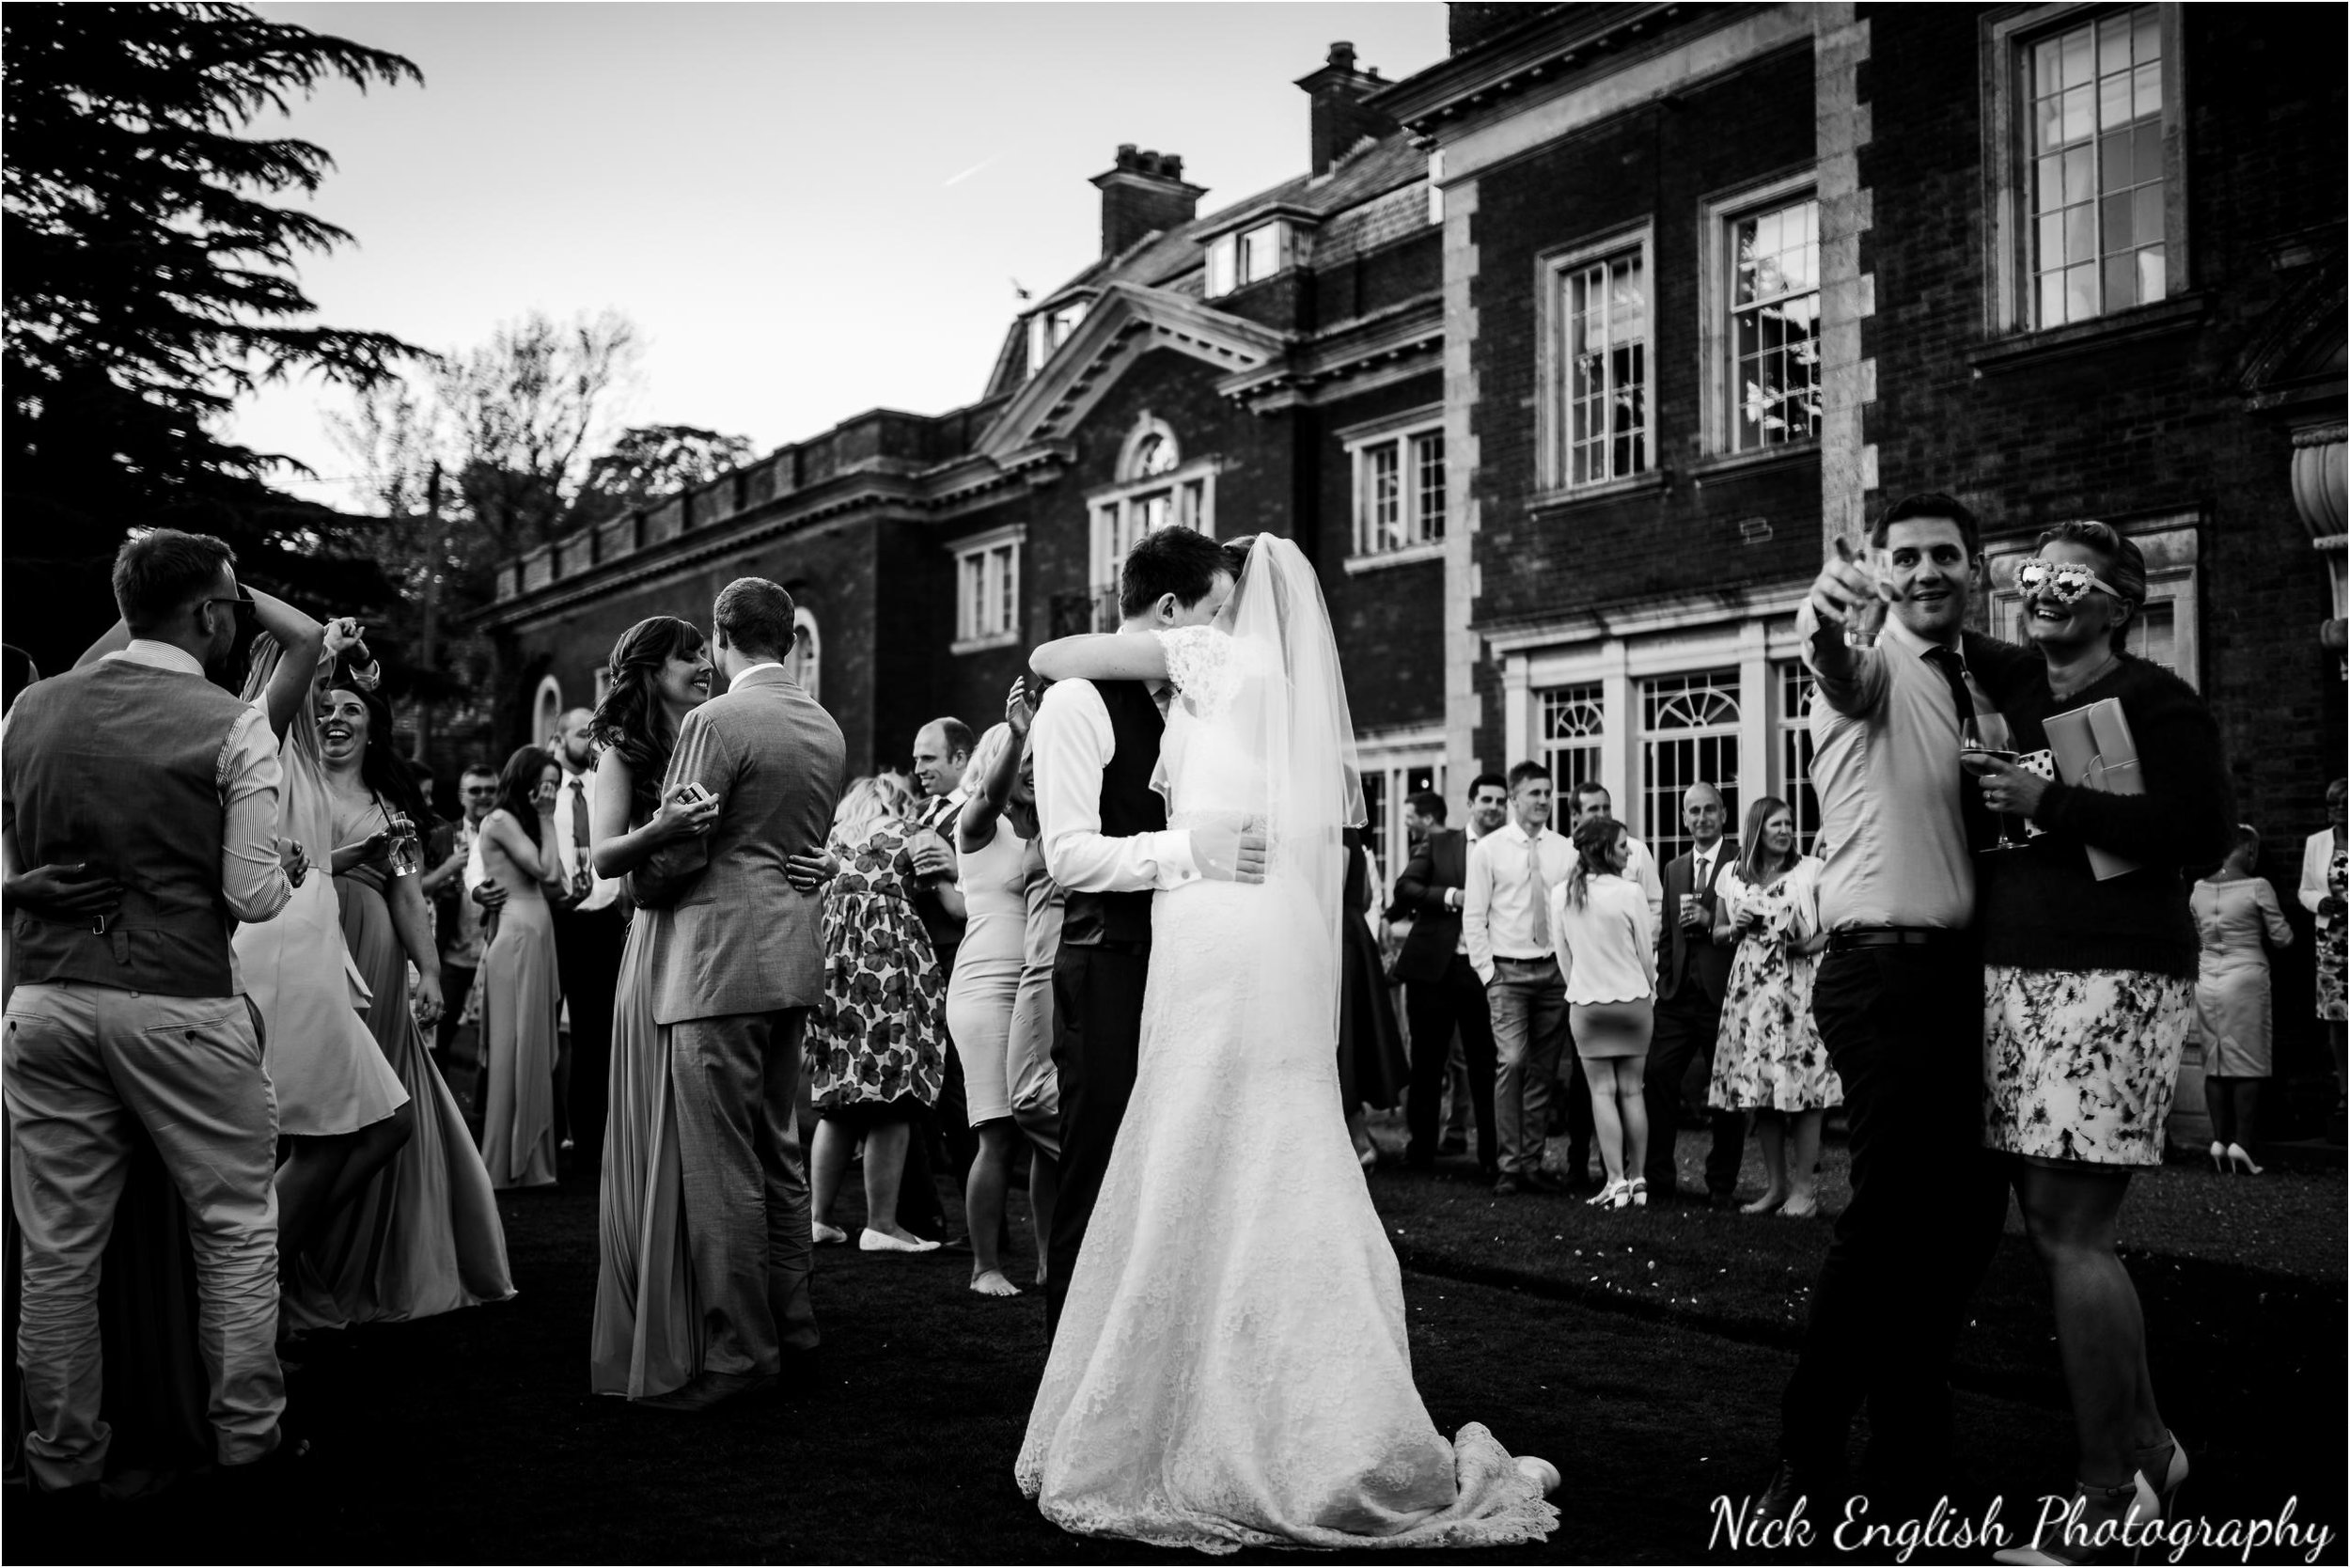 Alison James Wedding Photographs at Eaves Hall West Bradford 244jpg.jpeg